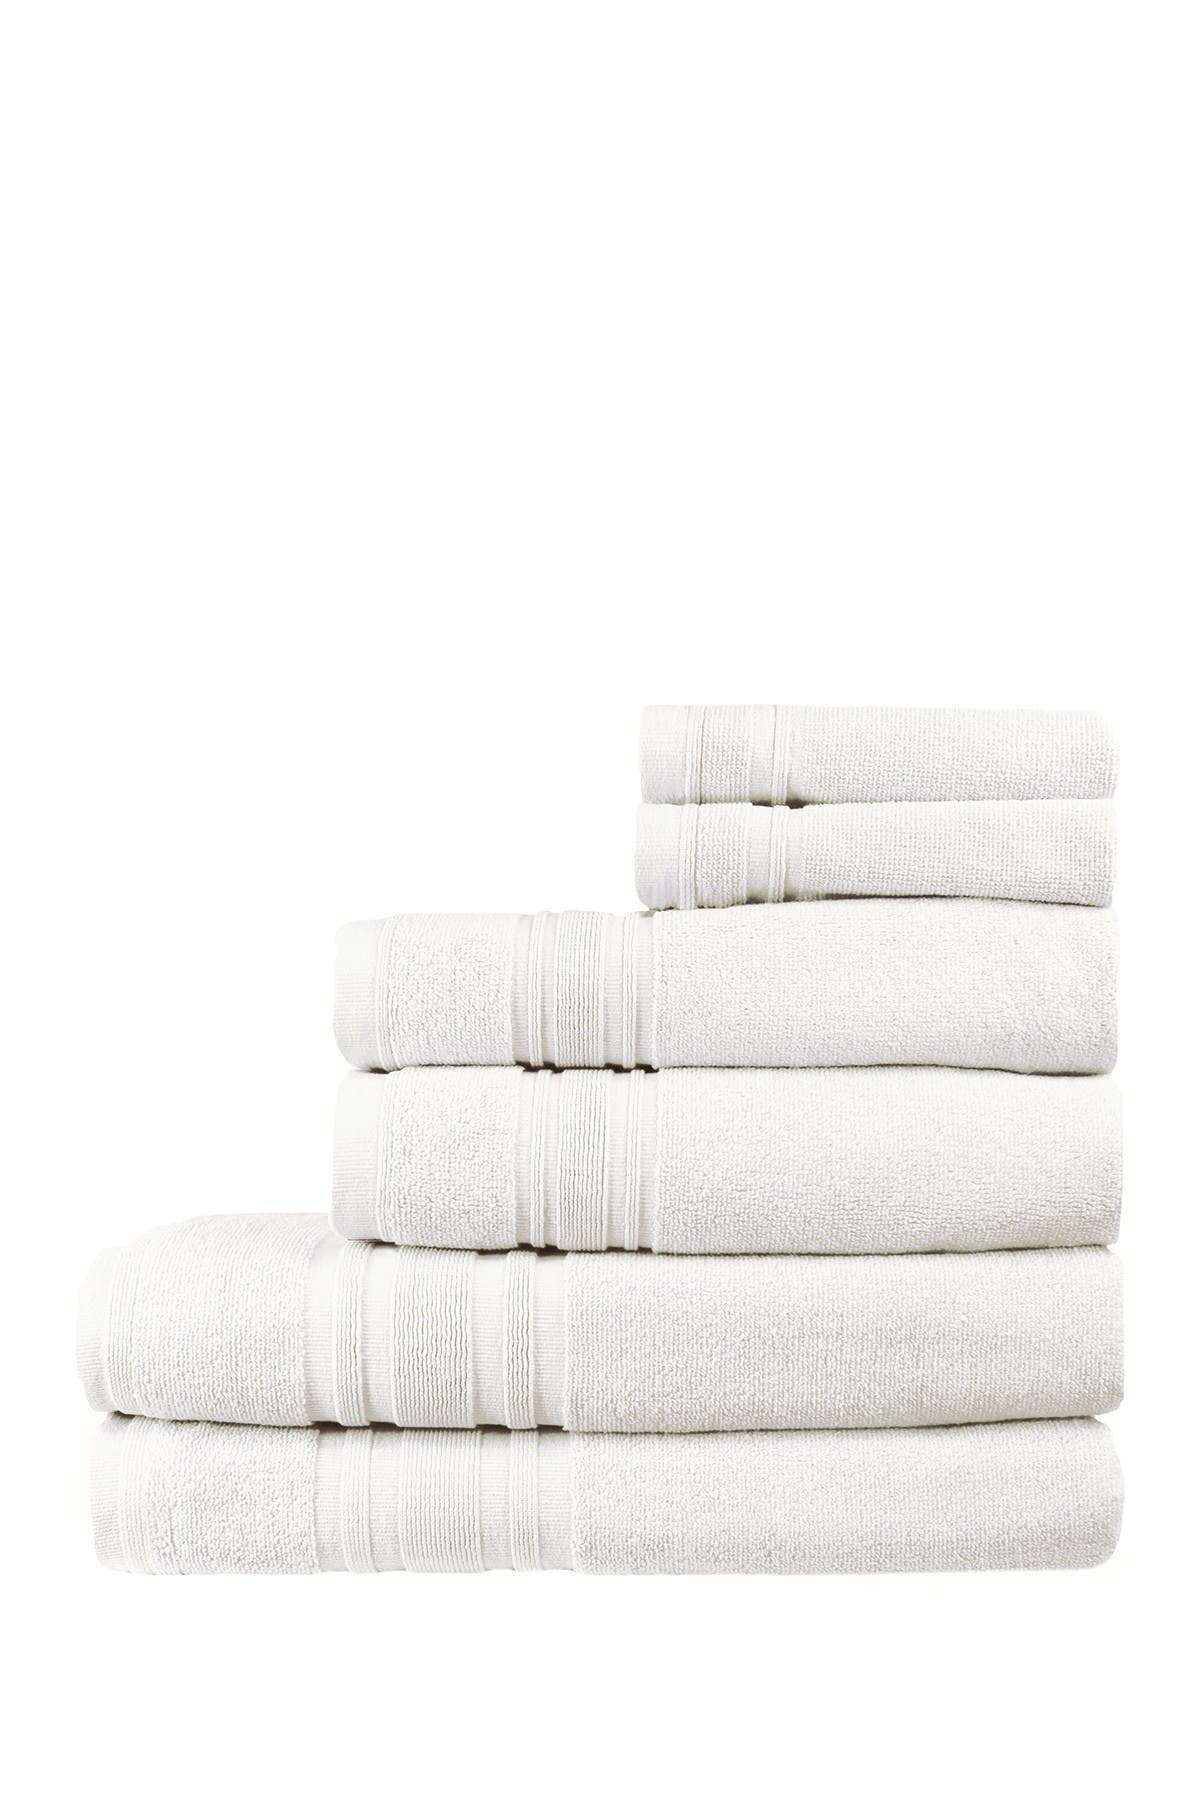 Image of Melange Home 100% Turkish Cotton 6-Piece Ensemble Set